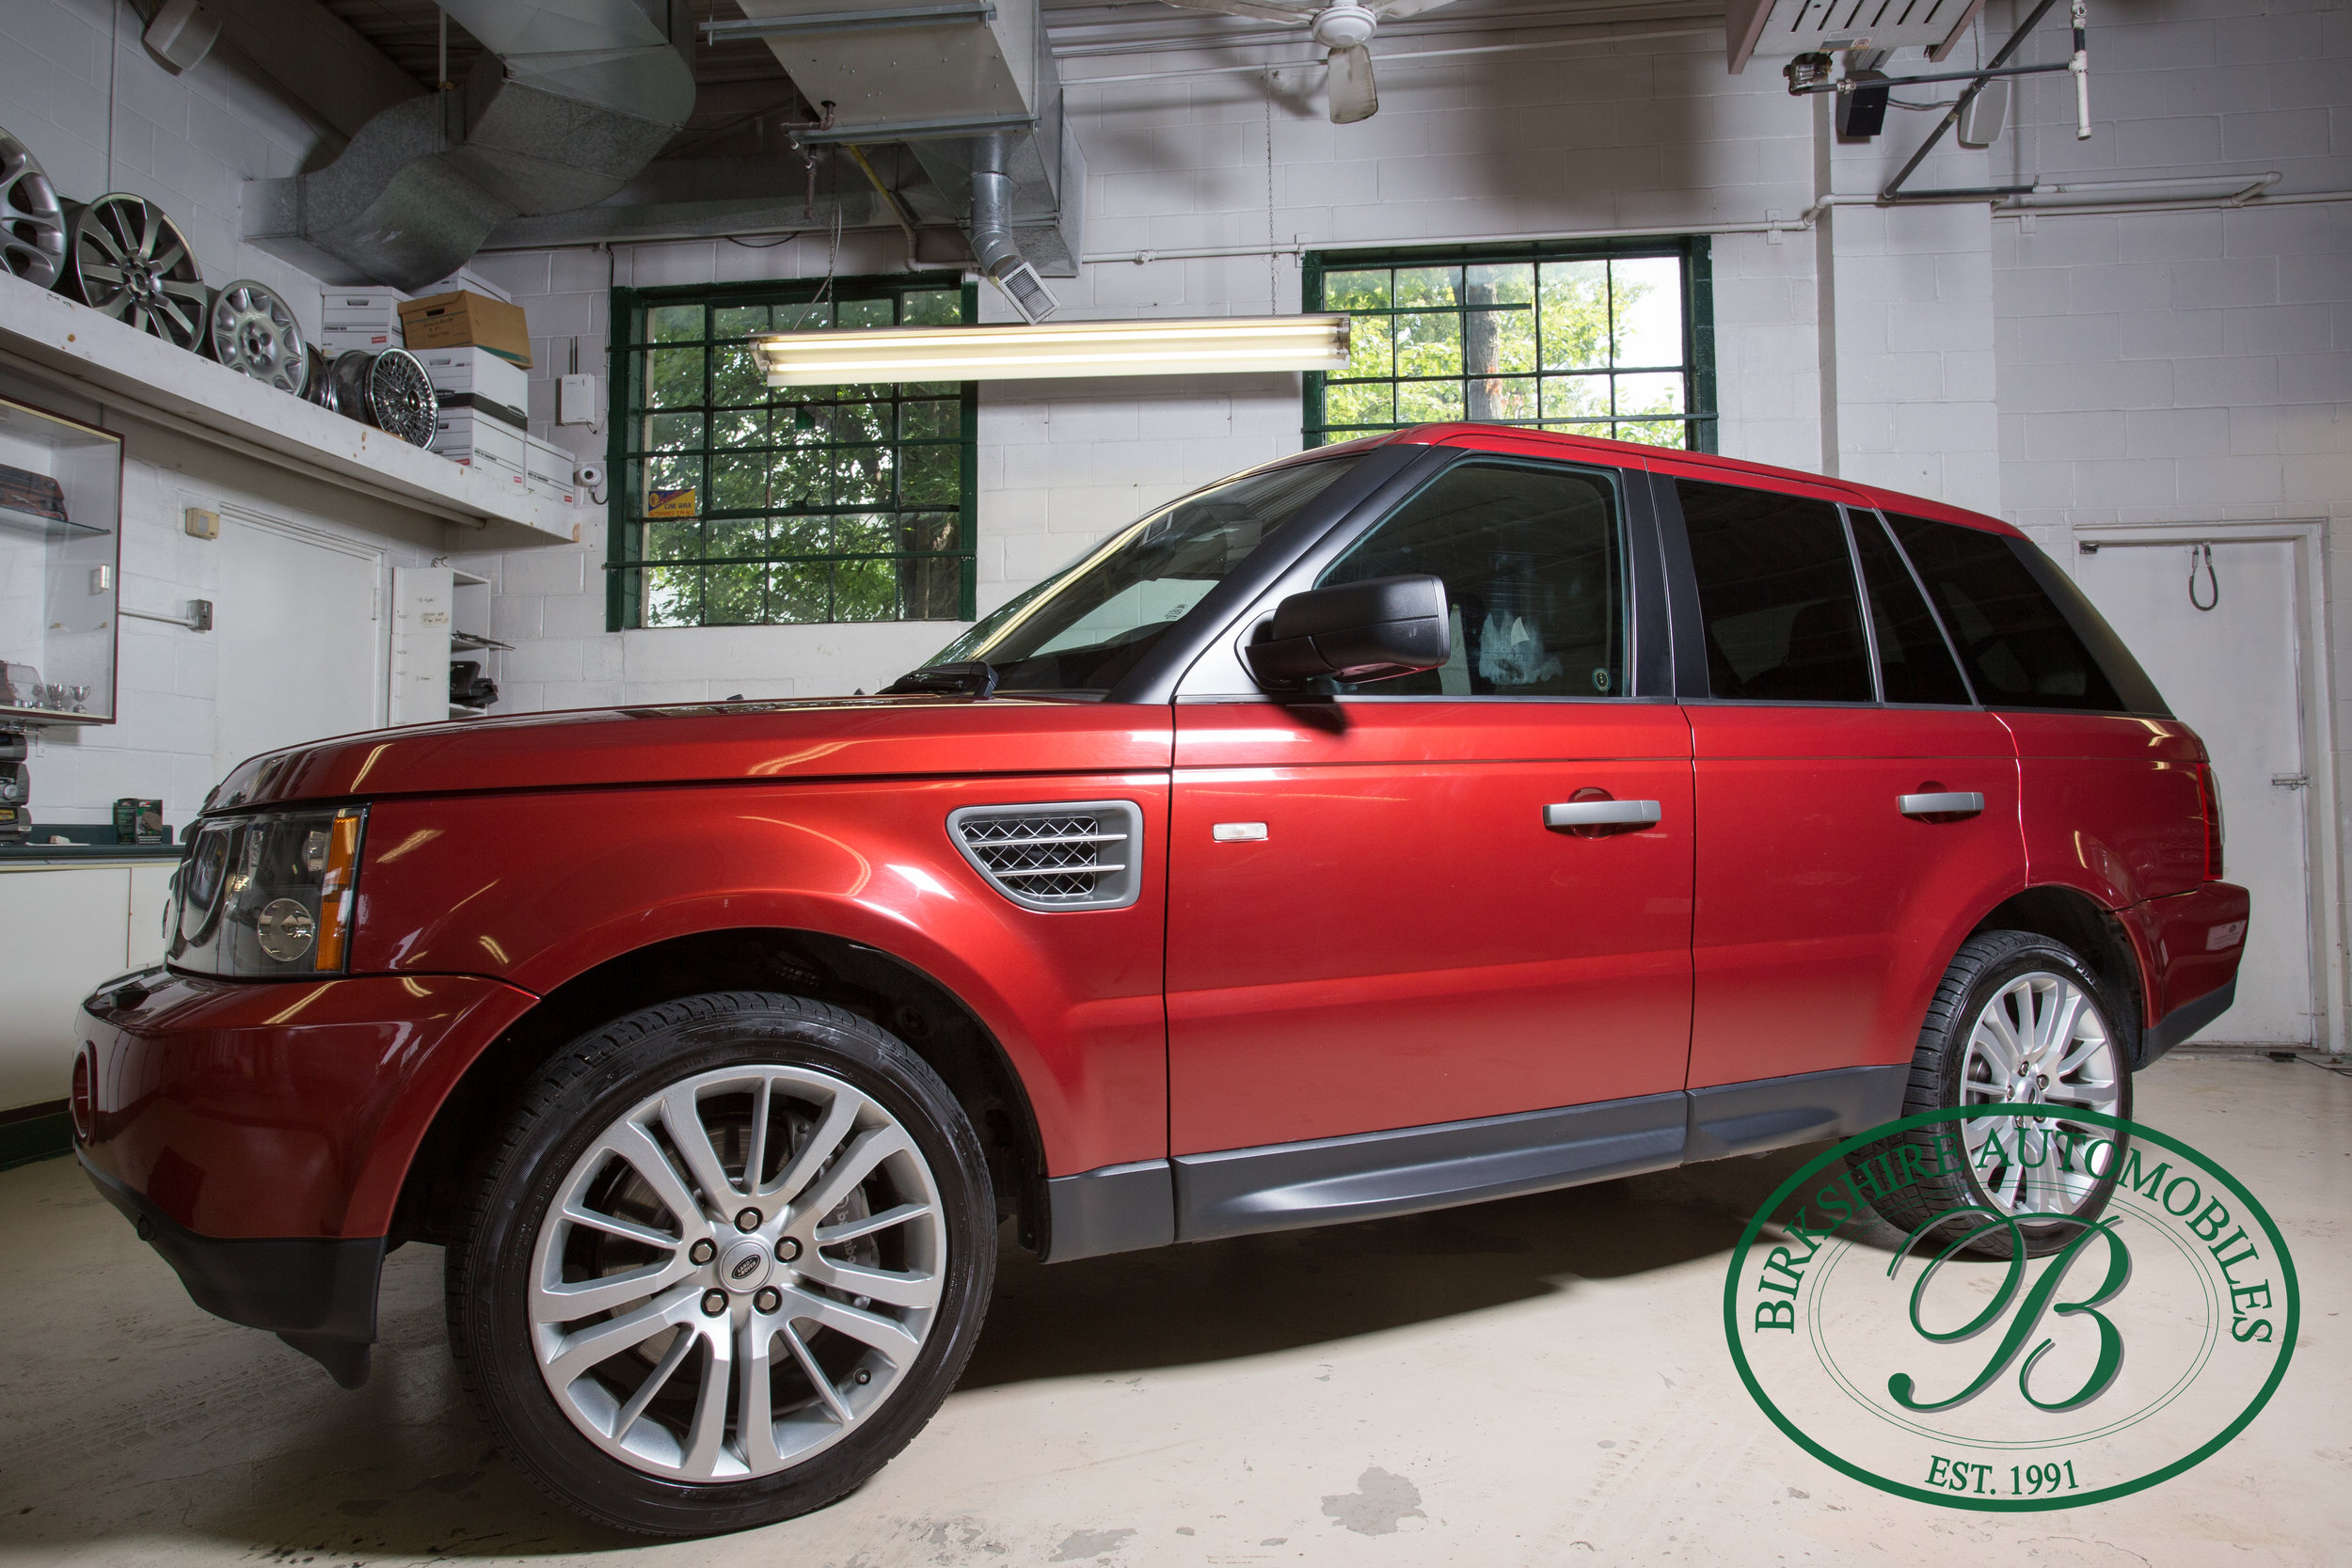 2009 Range Rover Sport Supercharged - SOLD - Offered for sale by Birkshire Automobiles, this stunning performance SUV is rated at 400 horsepower, delivery acceleration and performance completely in keeping with the expectations for a world-class high-performance sedan.